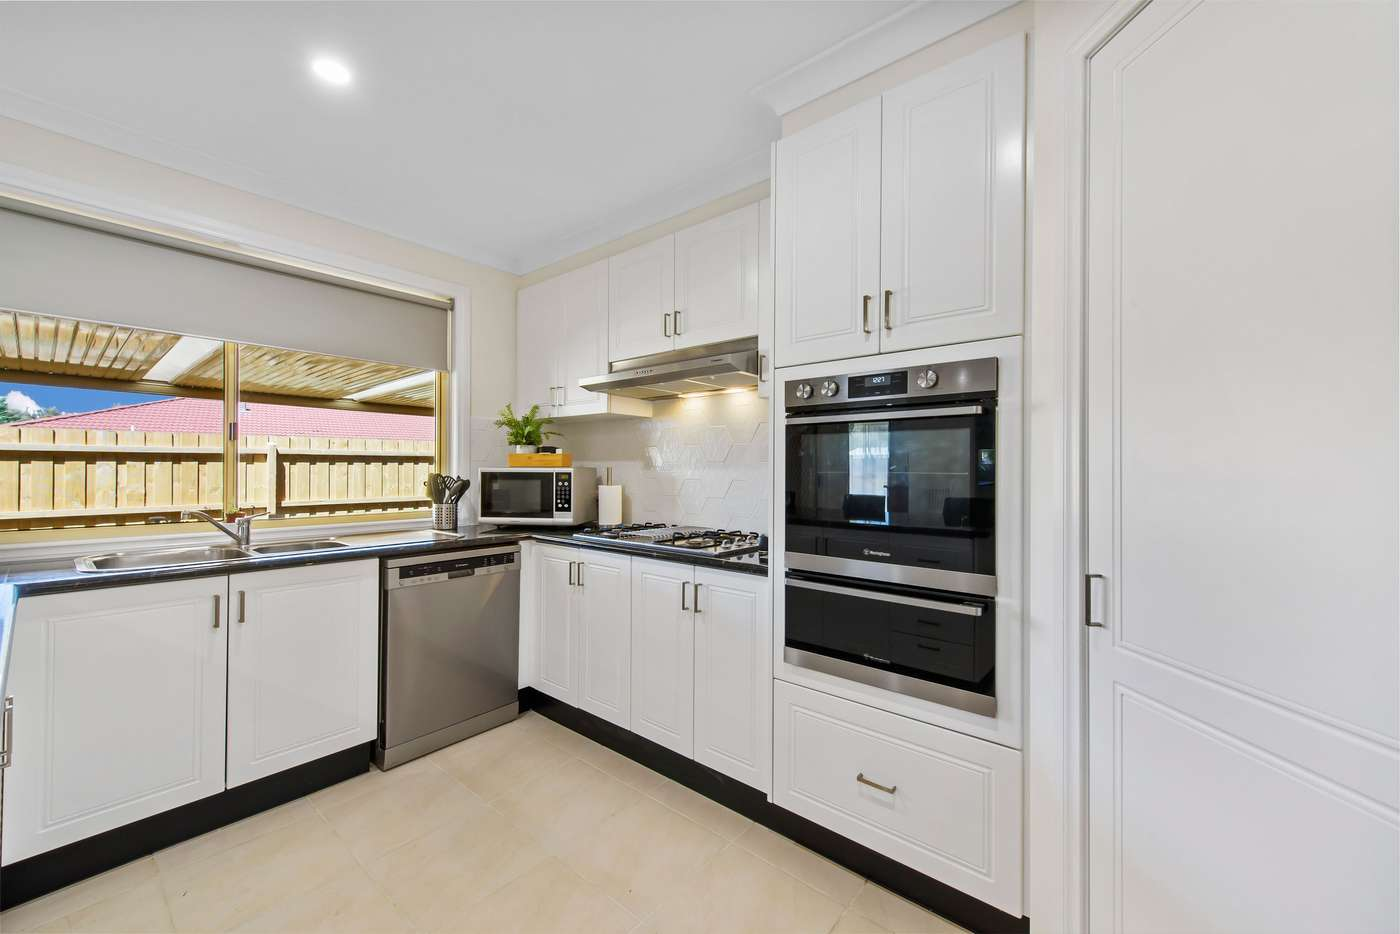 Seventh view of Homely house listing, 3 Marin Court, Taylors Hill VIC 3037